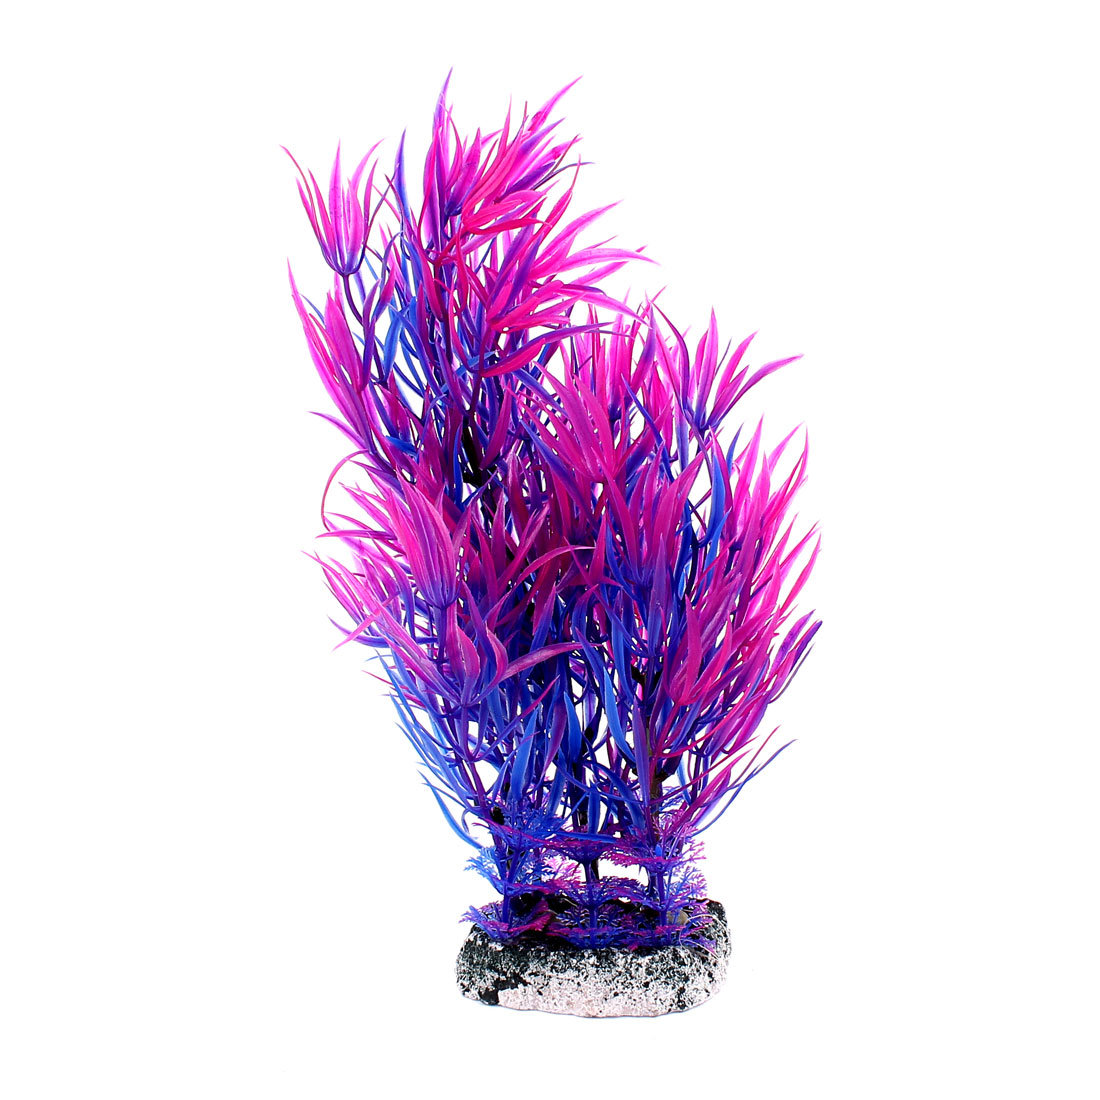 Plastic Aquatic Plant Simulation Leaf Fish Tank Aquarium Decoration Purple